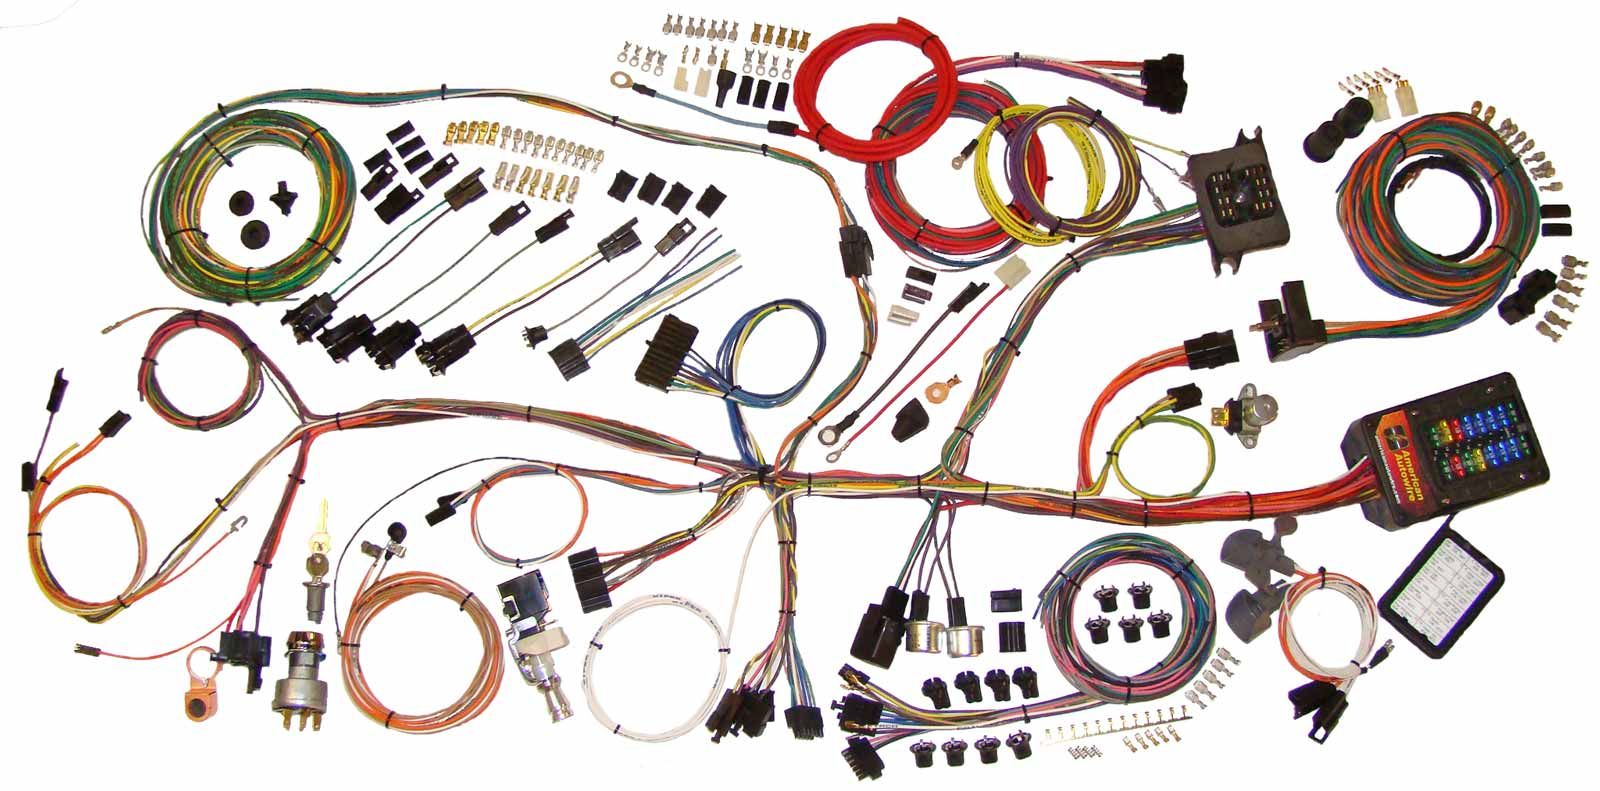 l_510140 62 67 nova classic update wiring harness 510140 auto wiring harness kits at mifinder.co